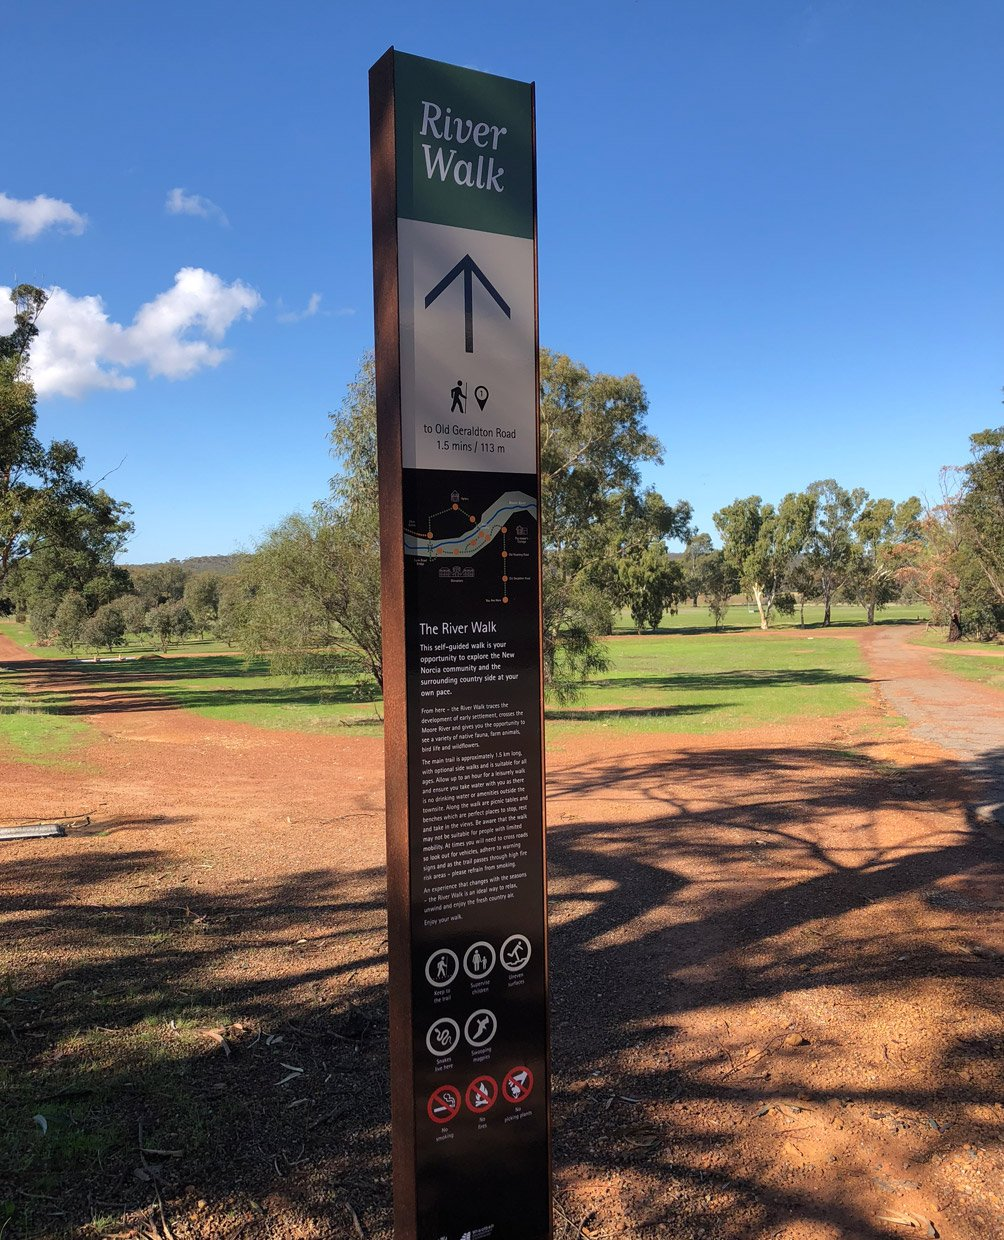 Wayfinding and interpretive signage for the river walk at New Norcia in Western Australia. Designed by Axiom Design Partners